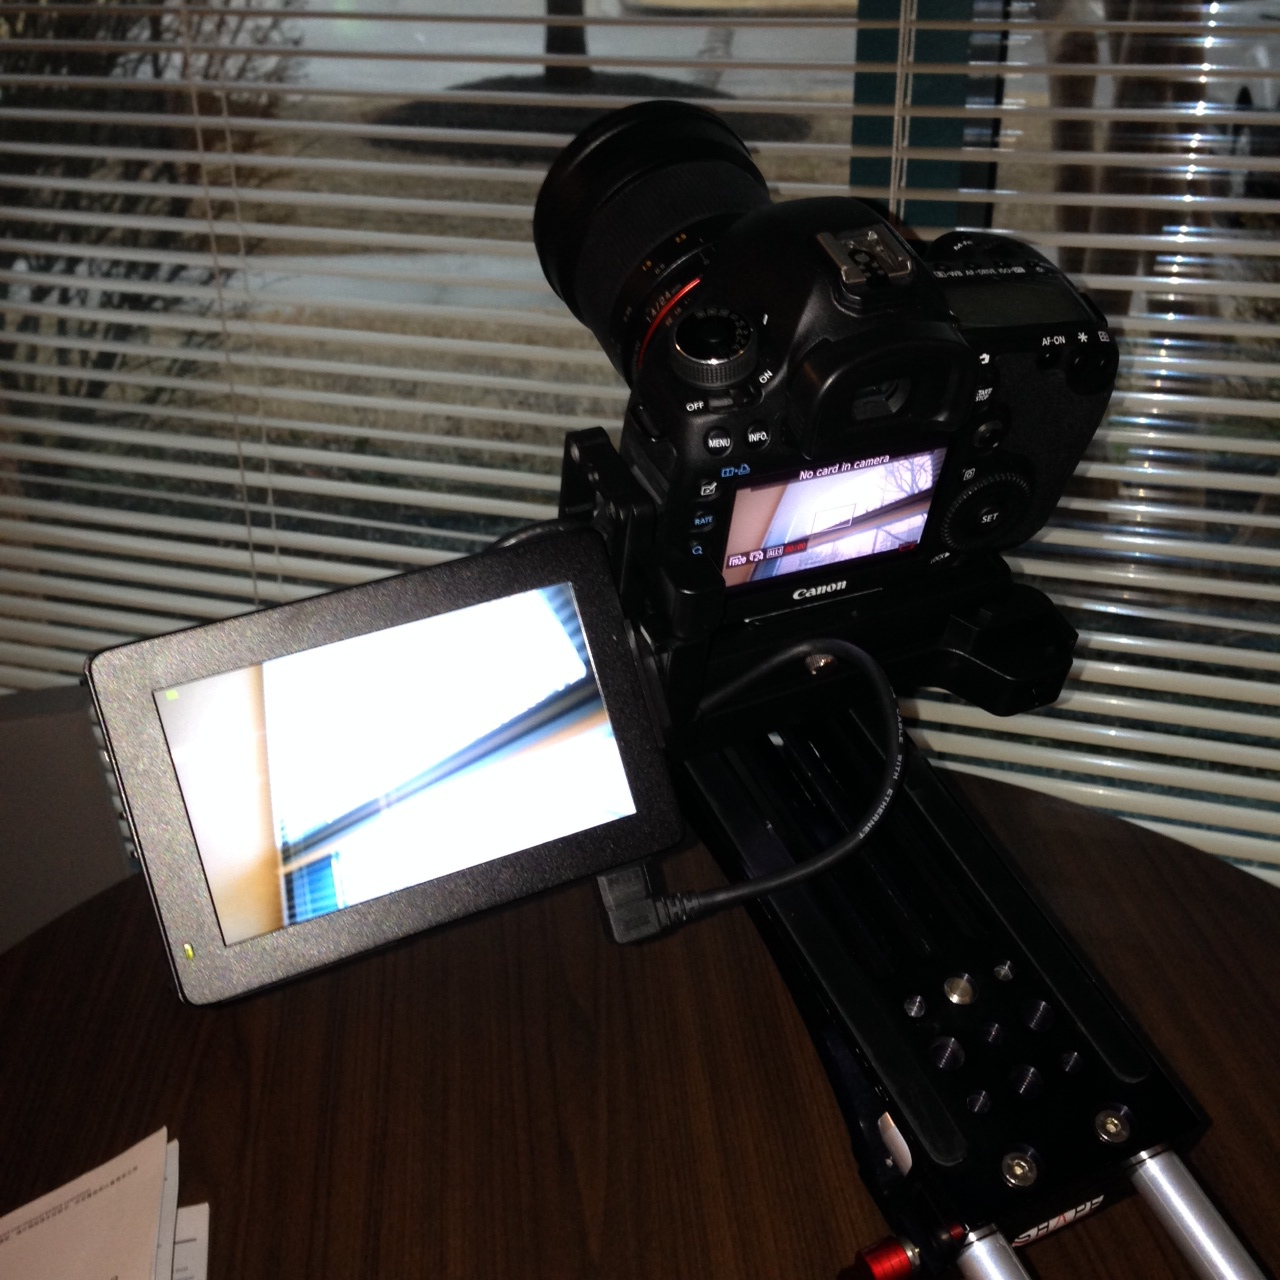 The Swivi attached to the 5D Mark III and mounted to a Shape camera rig